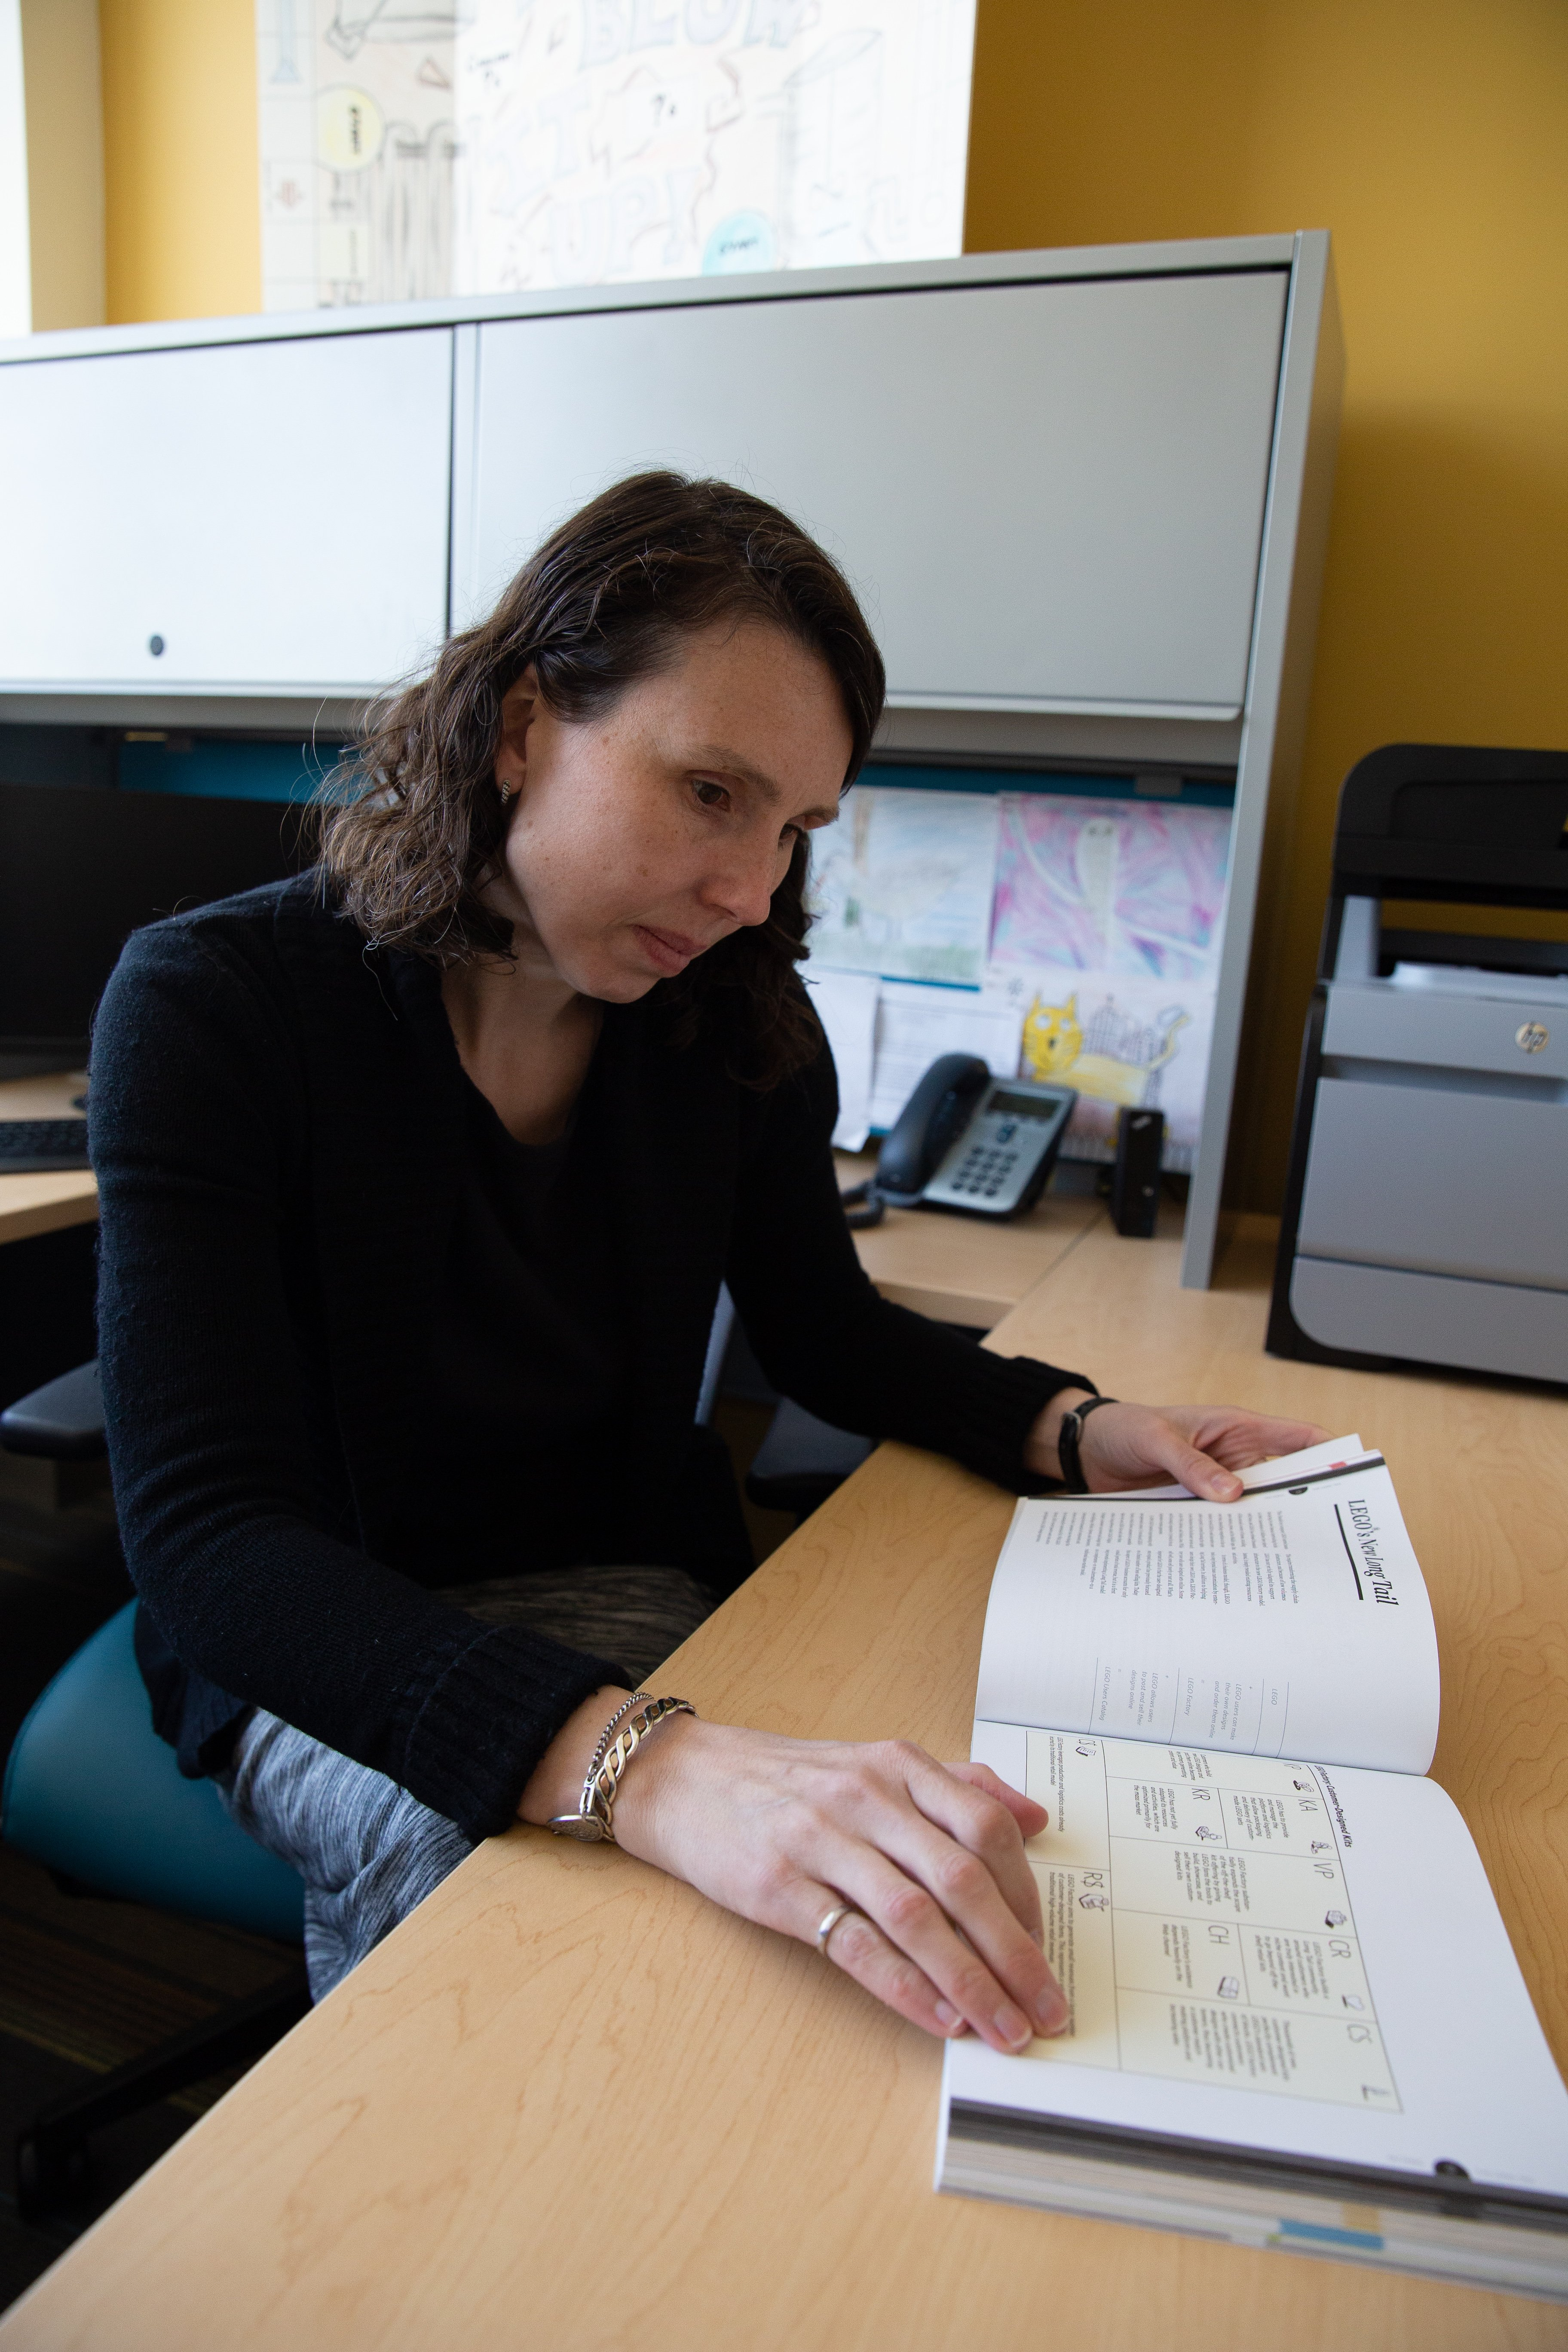 Dr. Cheryl Bodnar flipping through a book in her office at the engineering building.